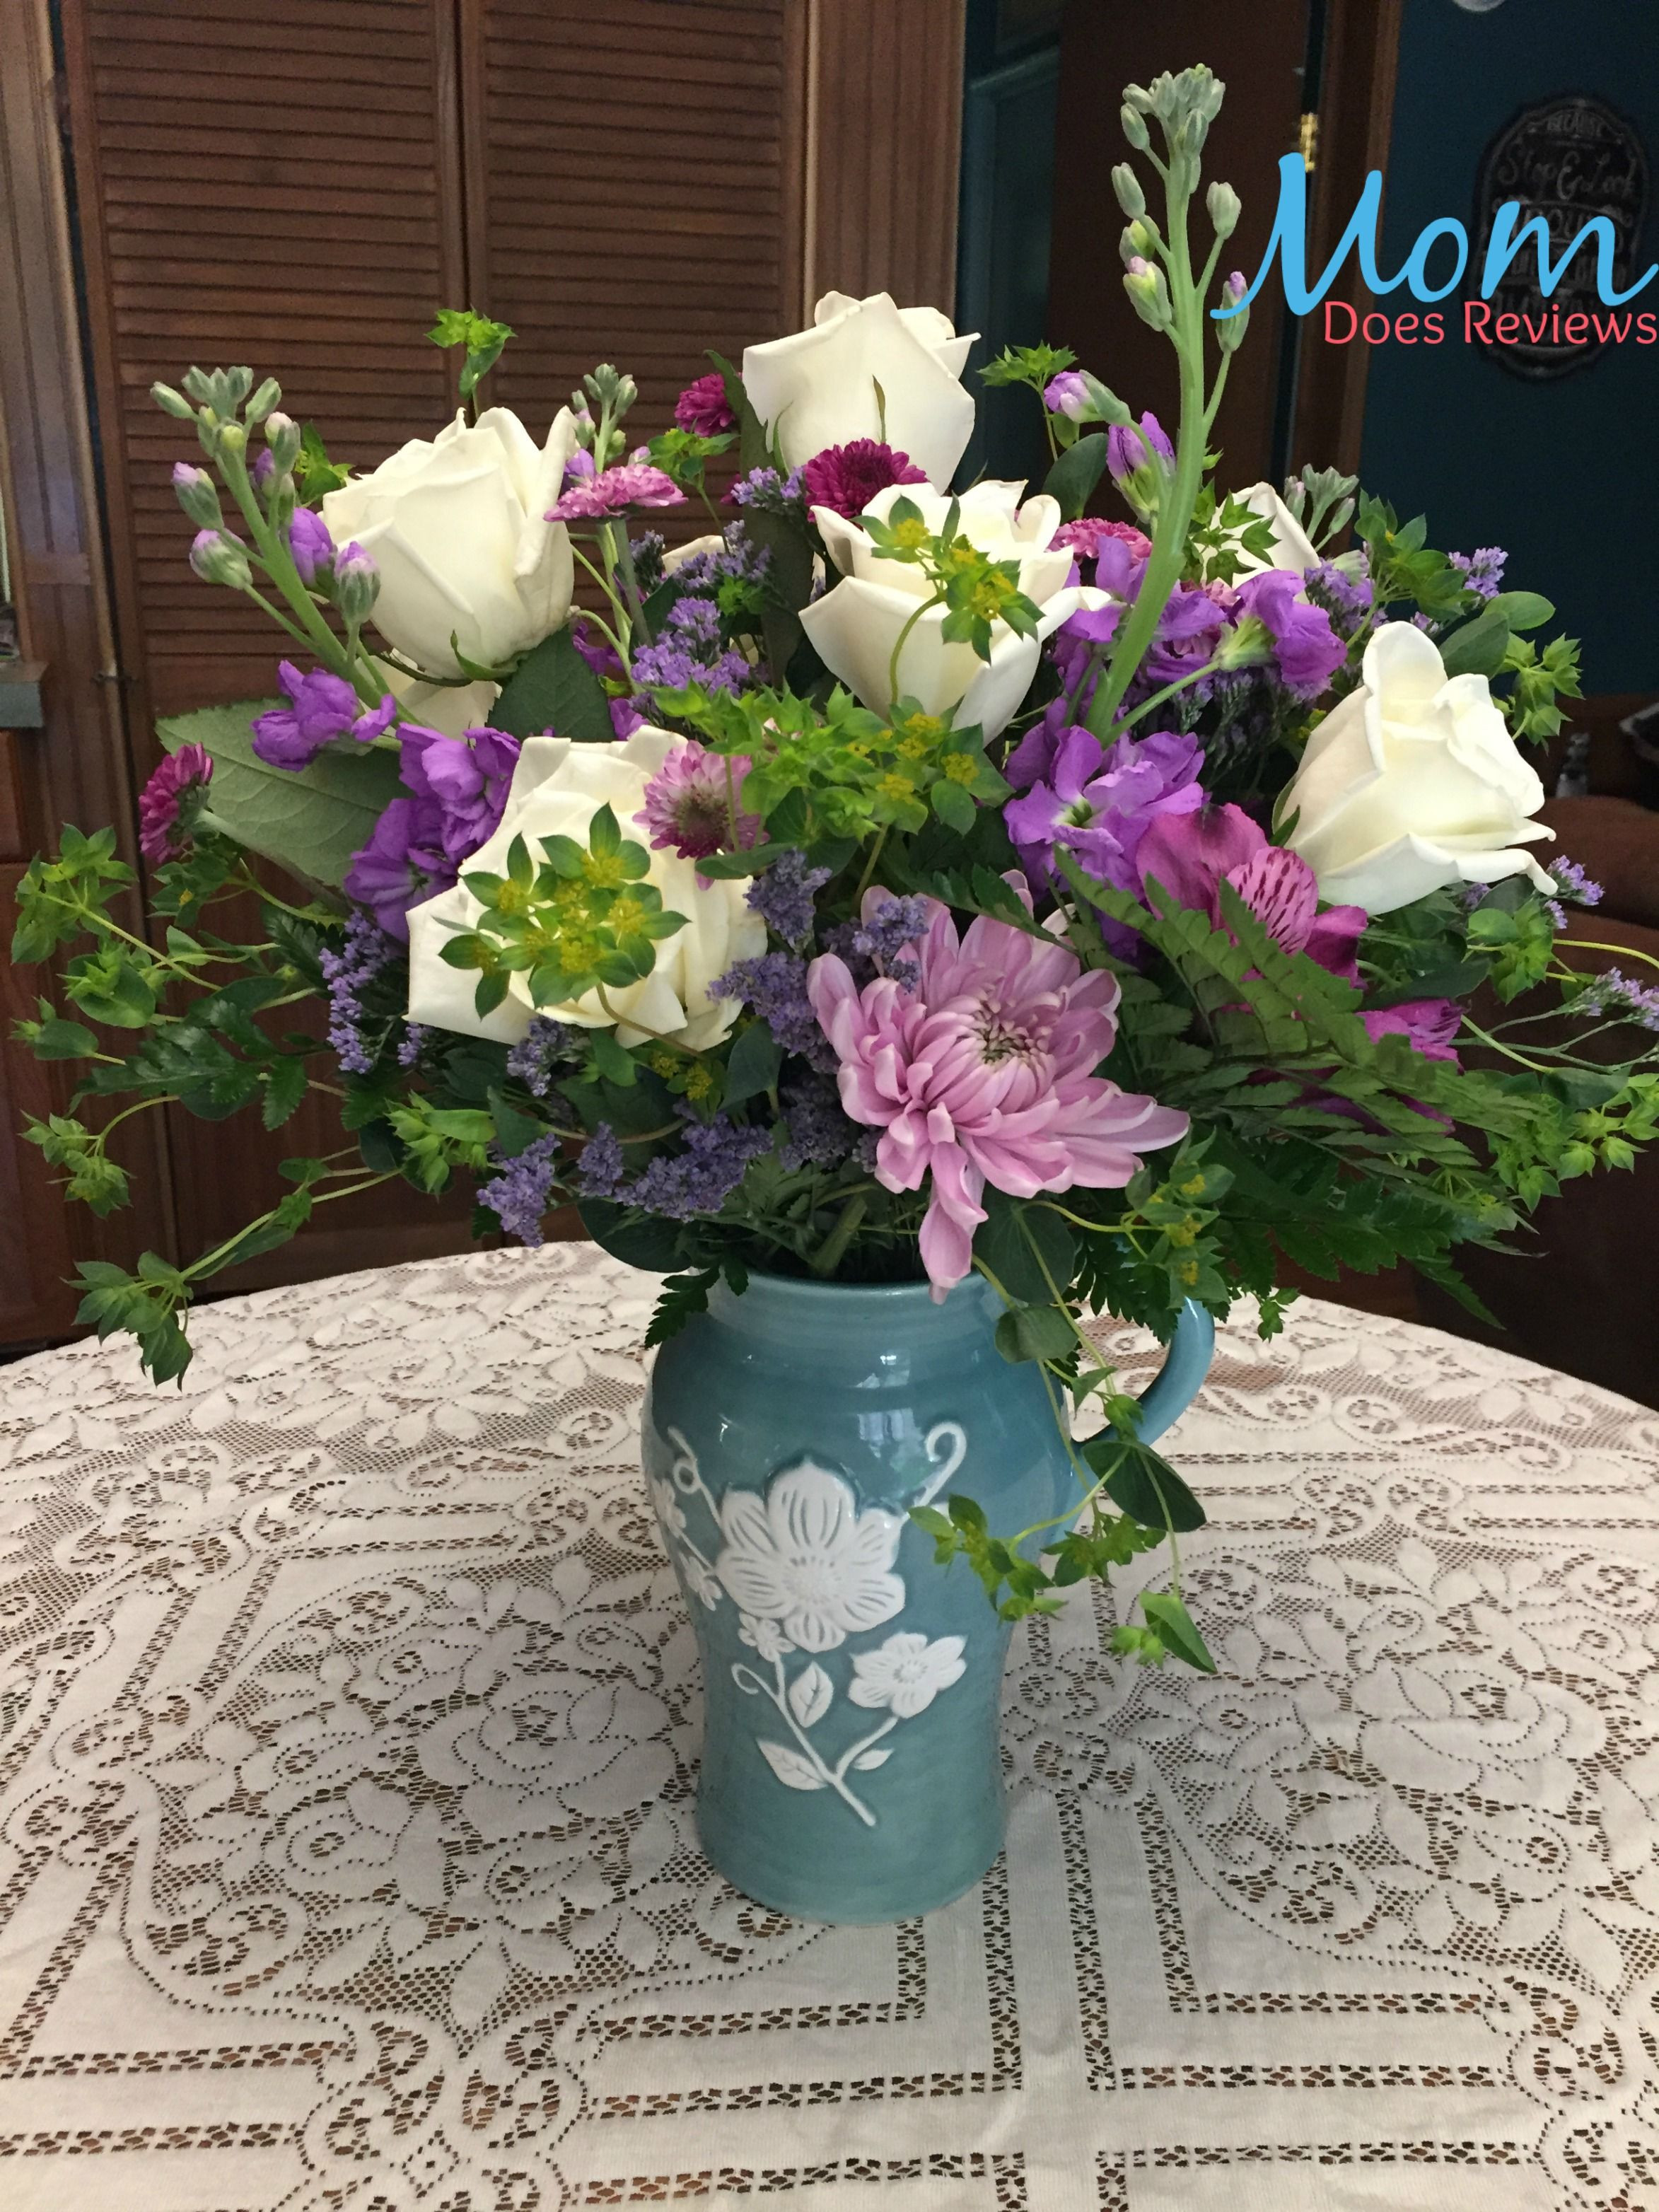 Beautiful Just Like Her Teleflora Bouquets for Mothers Day Review GiftsforHer17